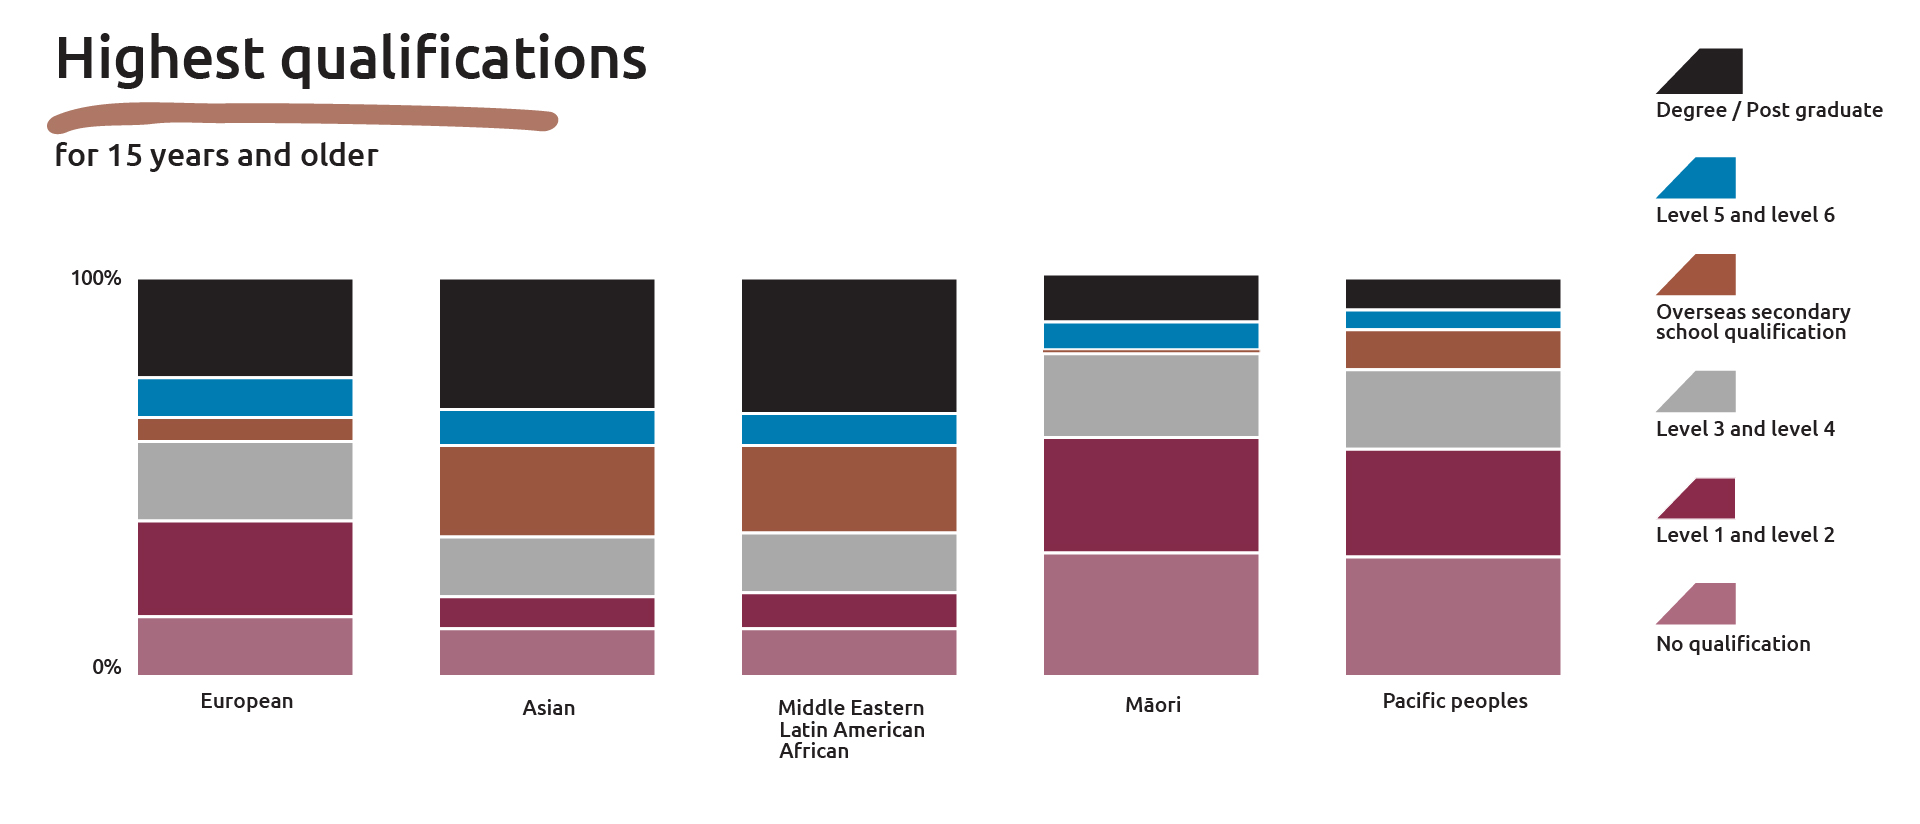 Chart shows the highest qualification levels achieved for 2013 across European, Asian, MELAA (Middle Eastern Latin American African), Māori and Pacific Island ethnic groups.